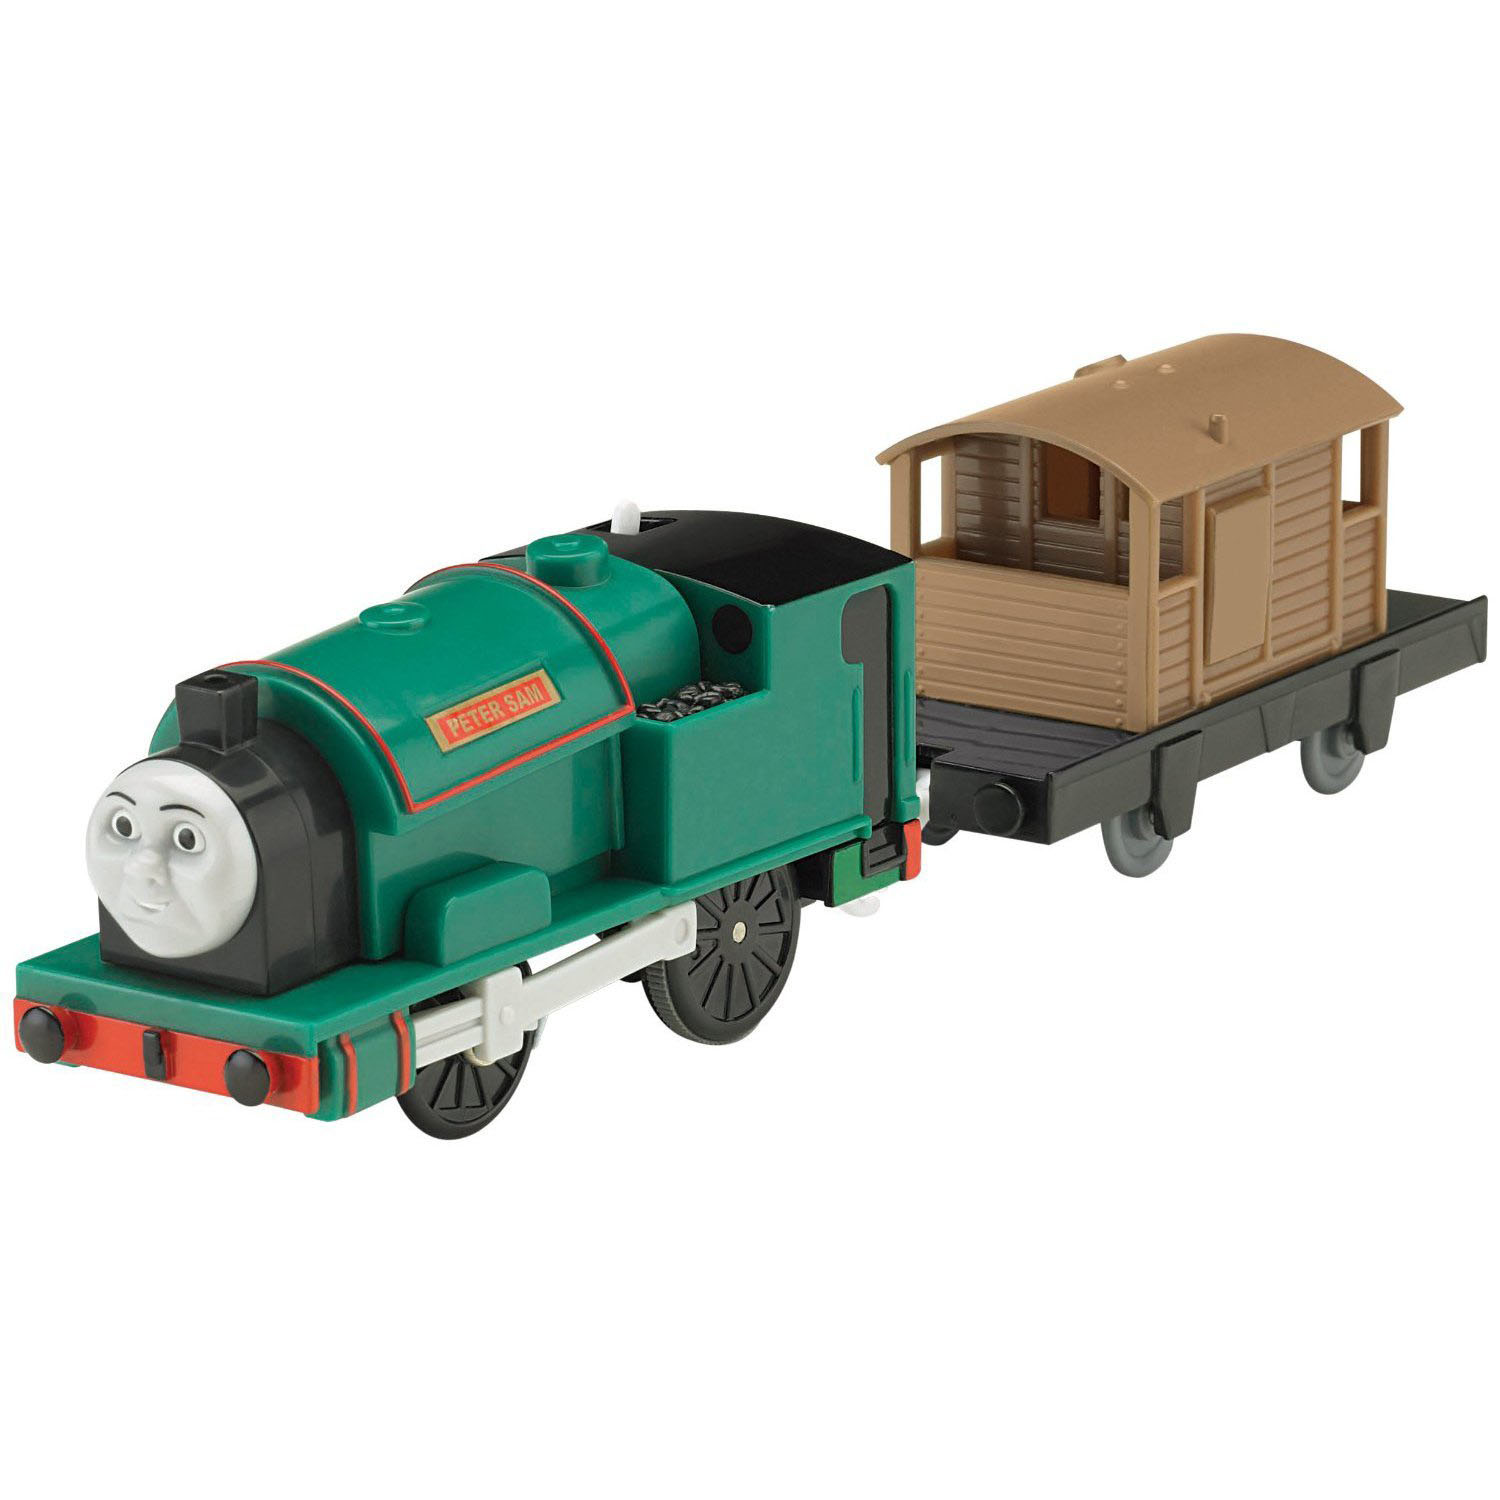 Thomas Trackmaster Trains Peter Sam Motorized Engine At